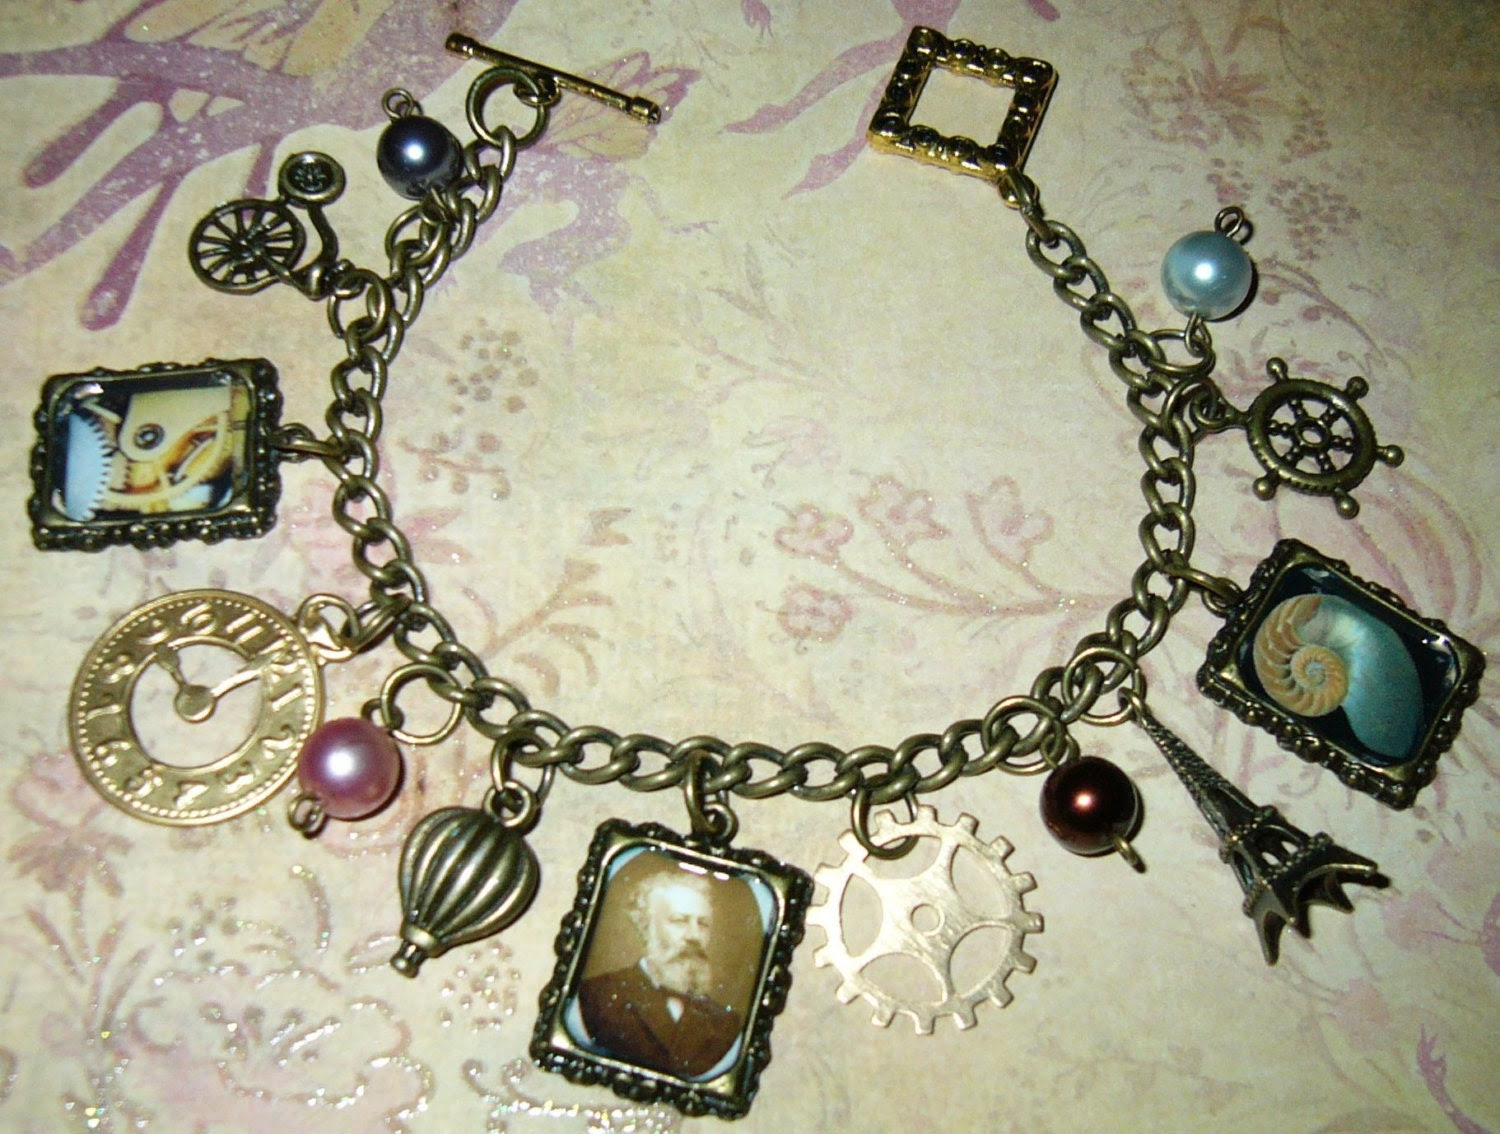 Steampunk Jules Verne Charm Bracelet, Altered Art, Vintage Style Charms, Cogs, Gears and Pearls- Handmade One of a Kind